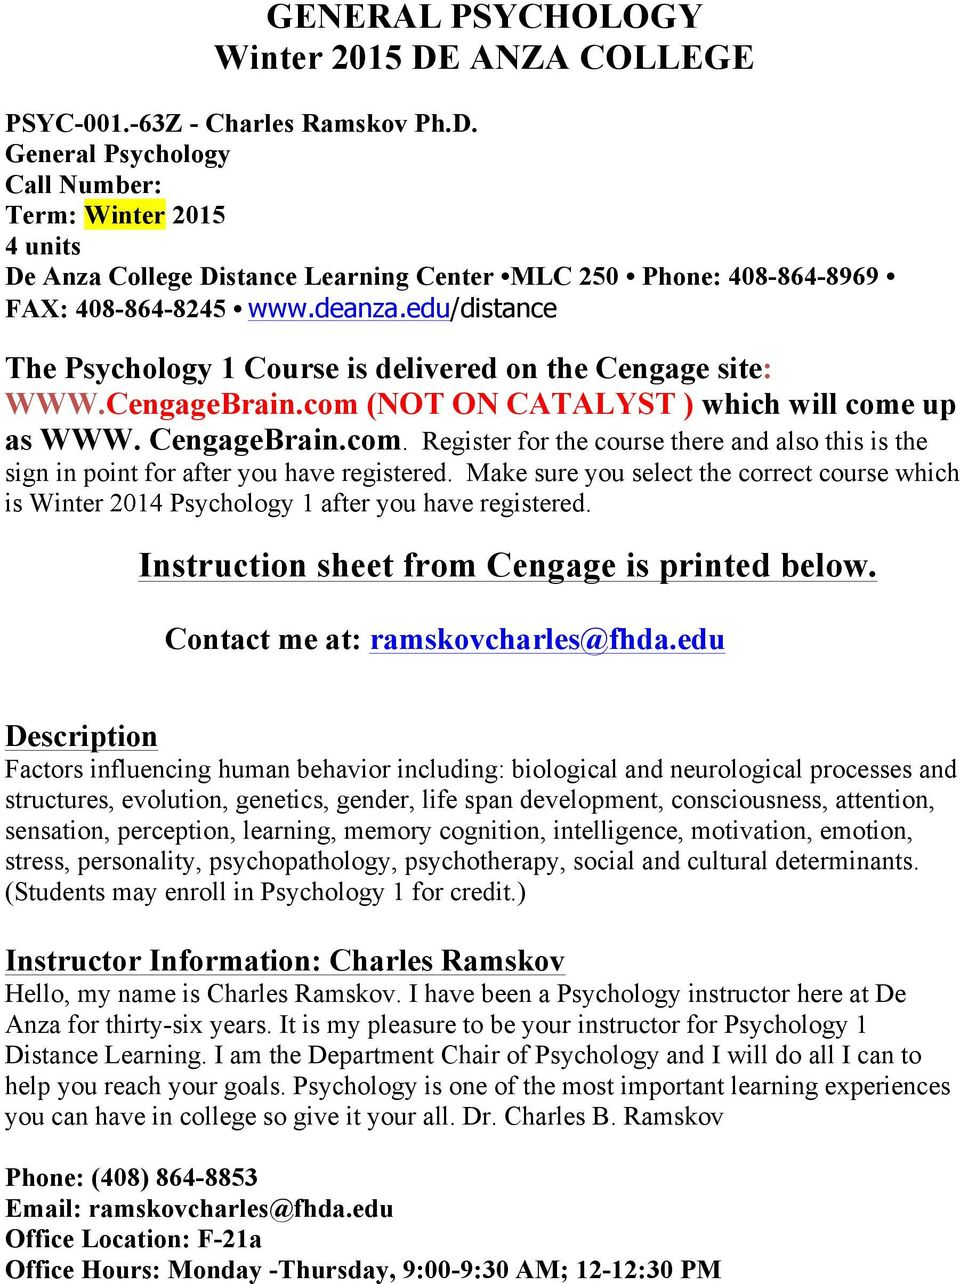 Make sure yu select the crrect curse which is Winter 2014 Psychlgy 1 after yu have registered. Instructin sheet frm Cengage is printed belw. Cntact me at: ramskvcharles@fhda.